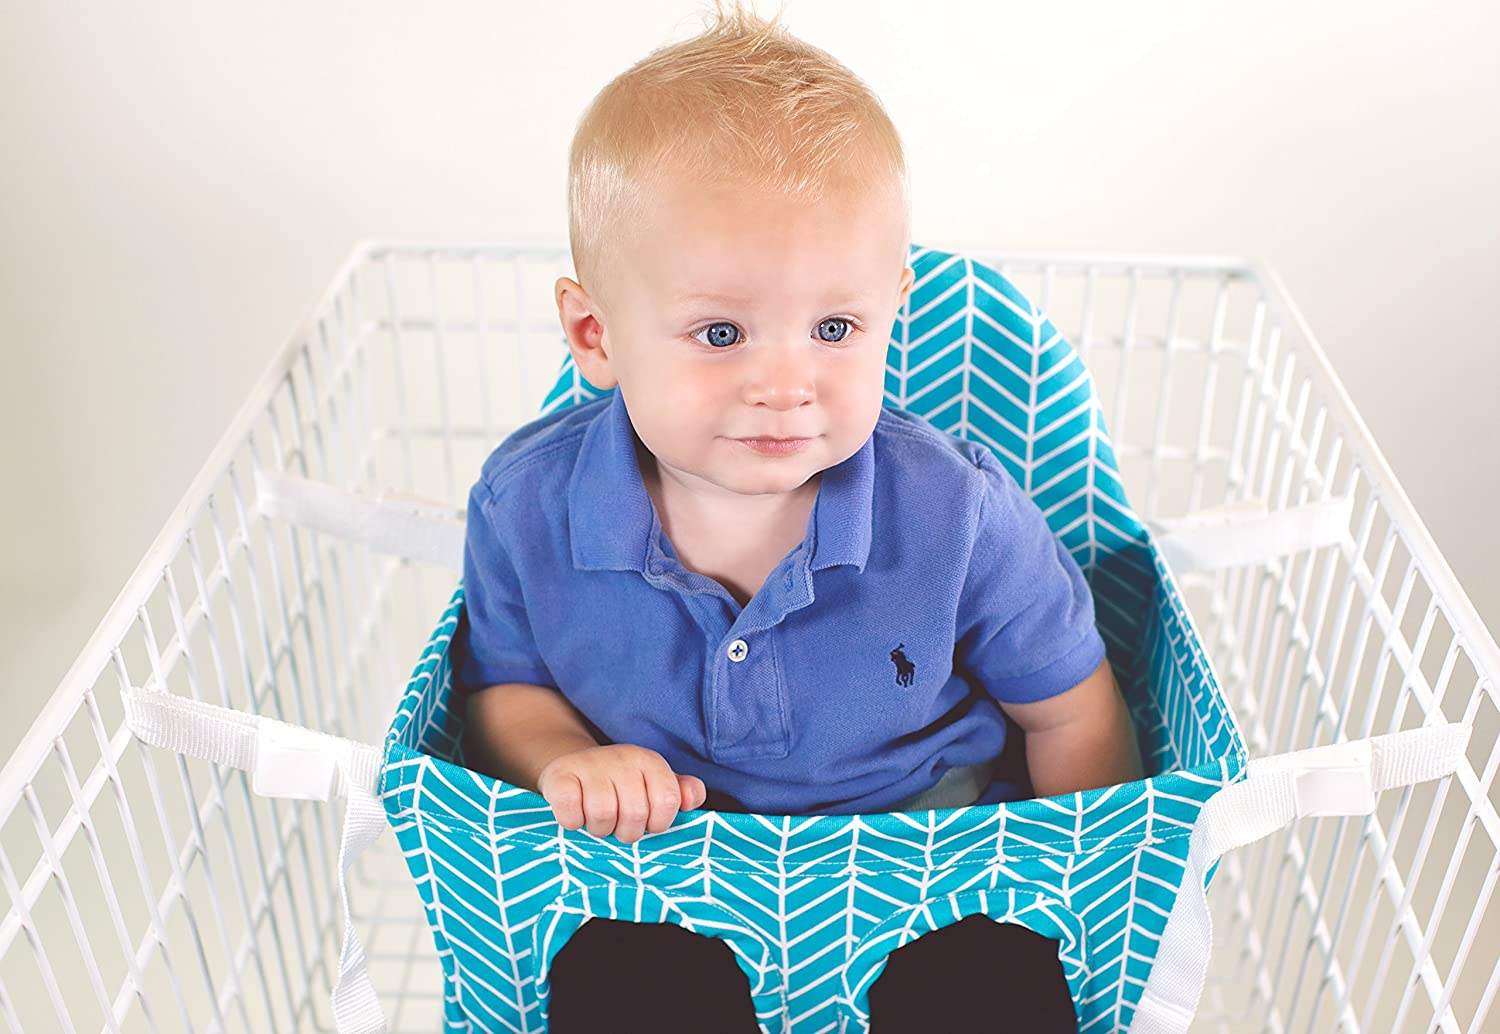 Amazon.com : Buggy Bench Shopping Cart Seat in Ocean Blue for Baby ...